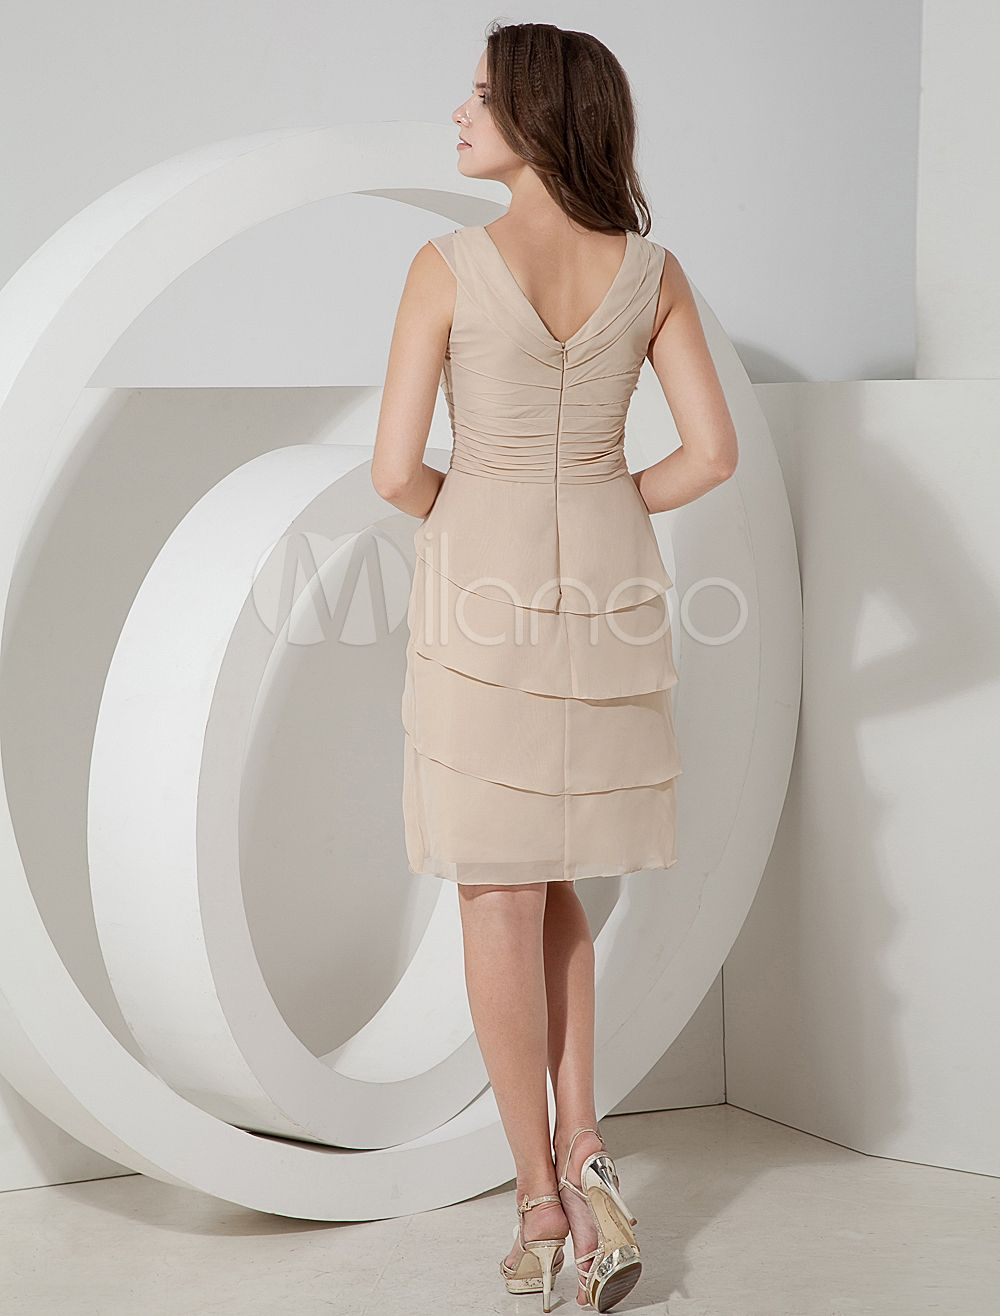 c7159e8cf1f Tiered V-Neck Chiffon Cocktail Dress Wedding Guest Dress  Chiffon